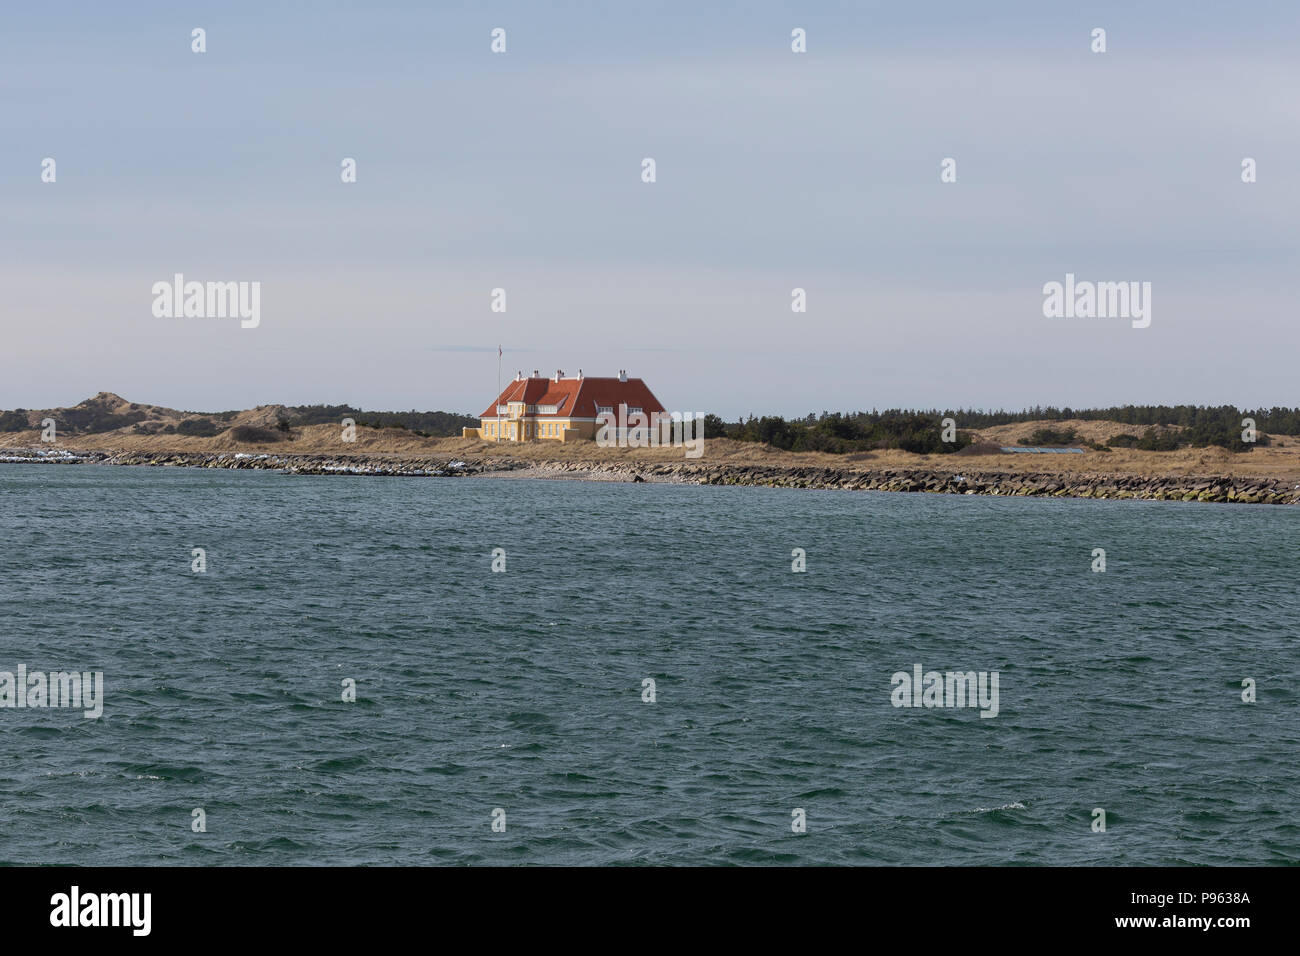 The 'Klitgaarden' in Skagen, also known as the  'Kongevillaen', was built as the summer residence of King Christian X of Denmark in 1914. Used by King - Stock Image